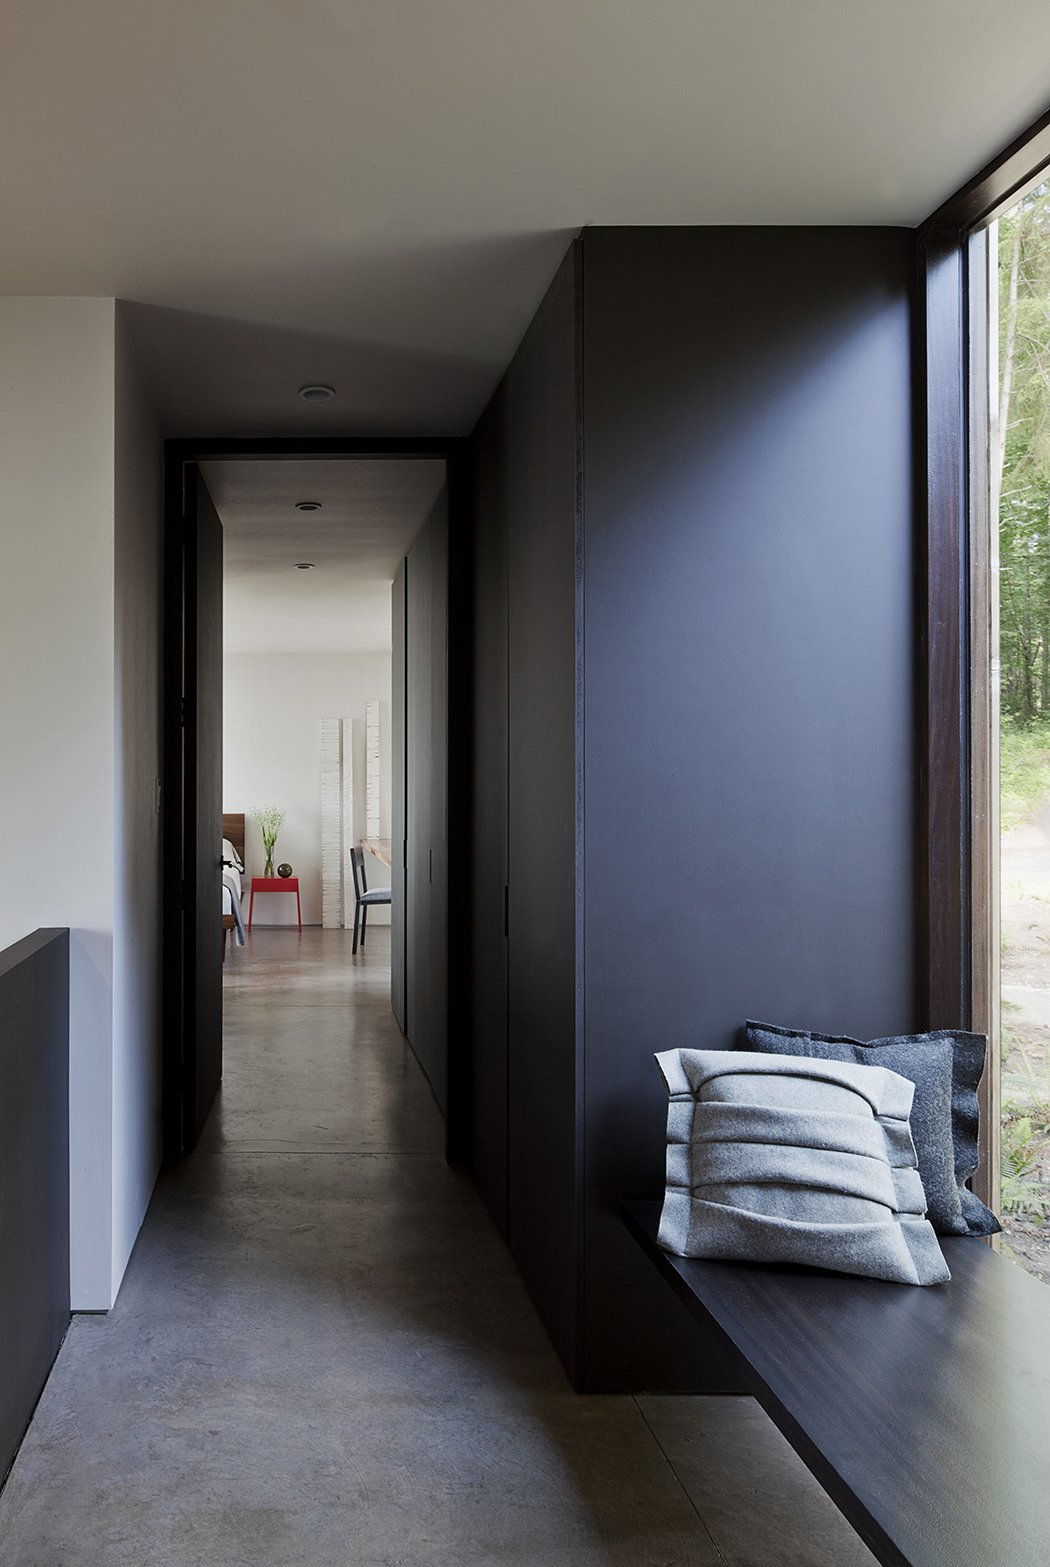 Hallway and Concrete Floor Case Inlet Retreat  Case Inlet Retreat by mw|works